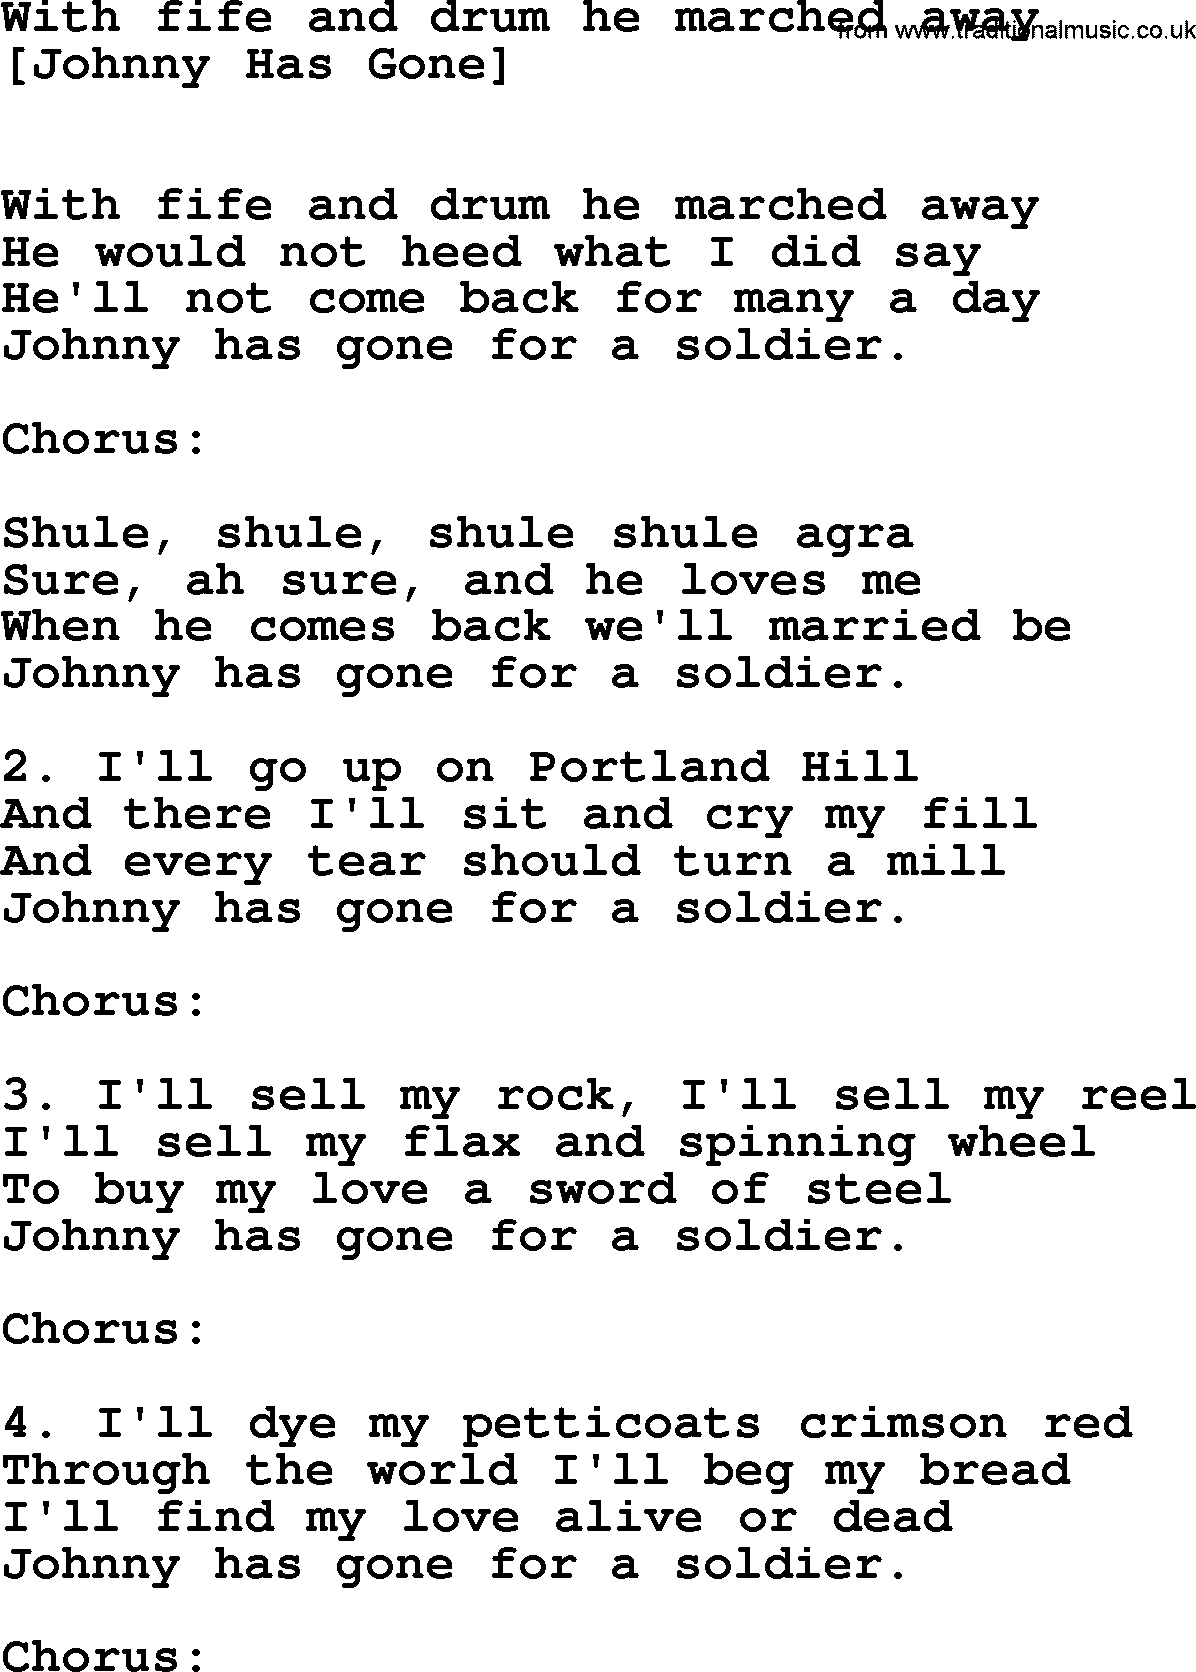 Old English Song Lyrics For With Fife And Drum He Marched Away With Pdf